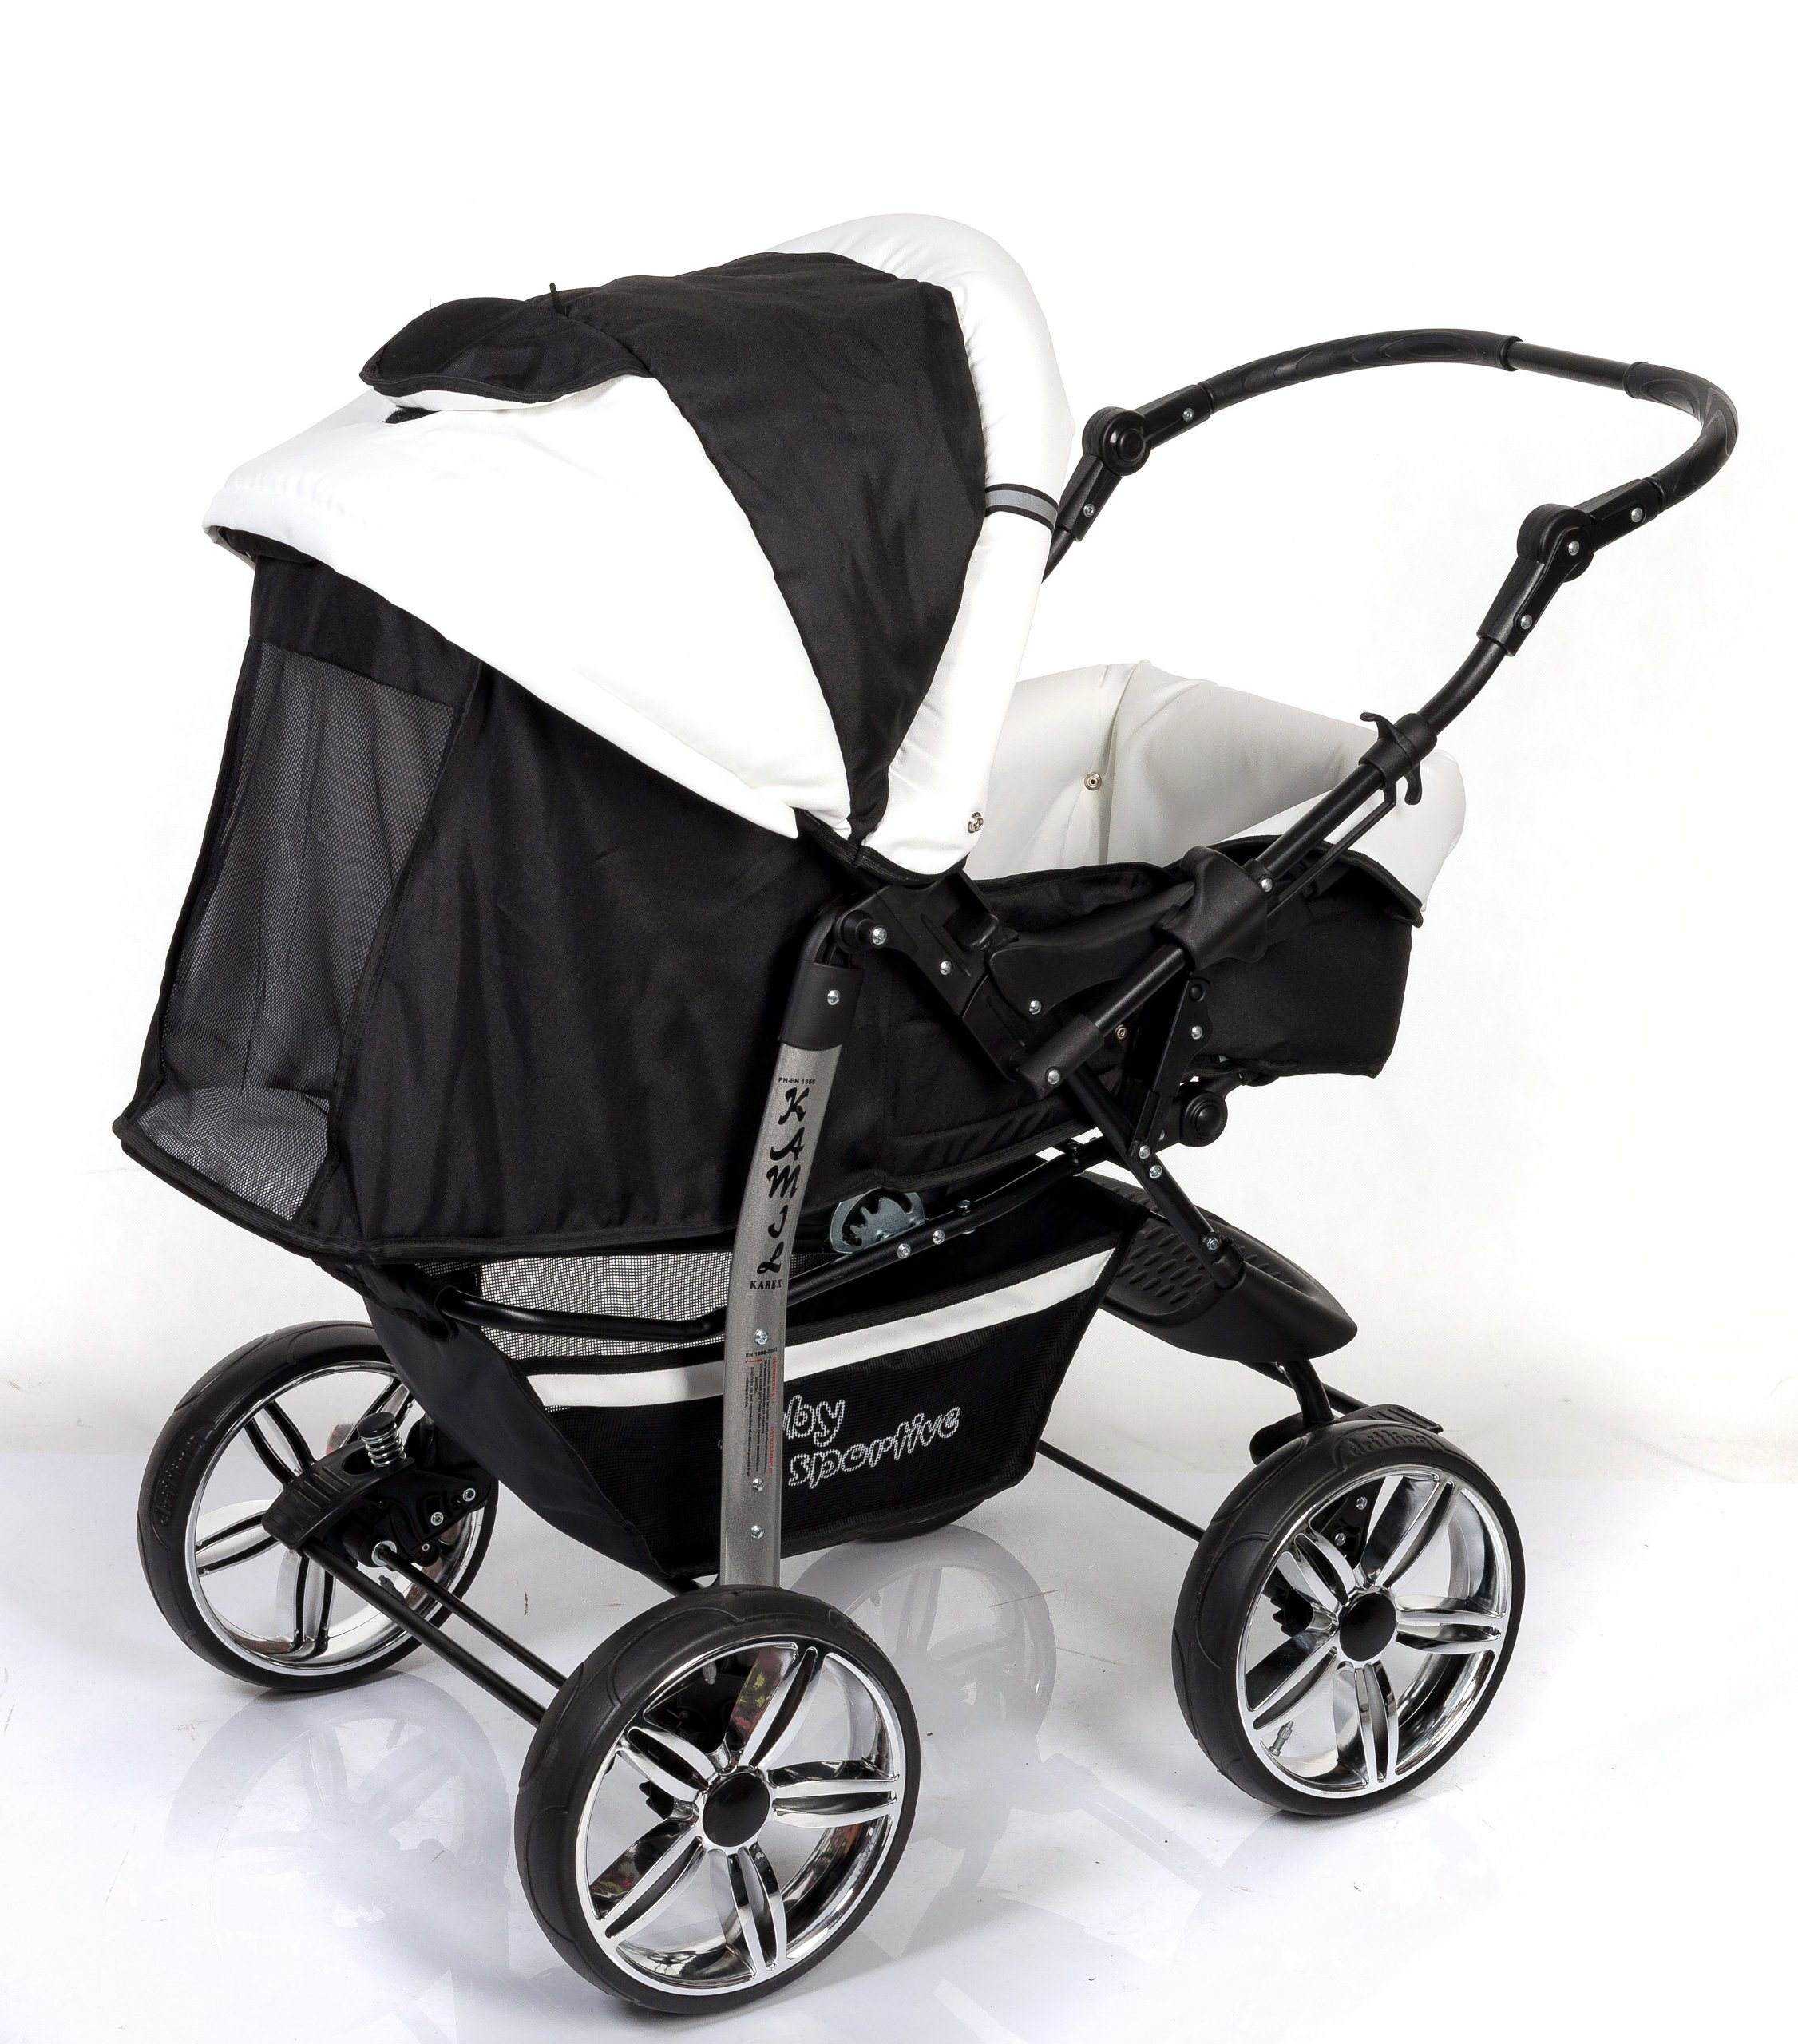 3-in-1 Travel System with Baby Pram, Car Seat, Pushchair & Accessories, Black & White   7